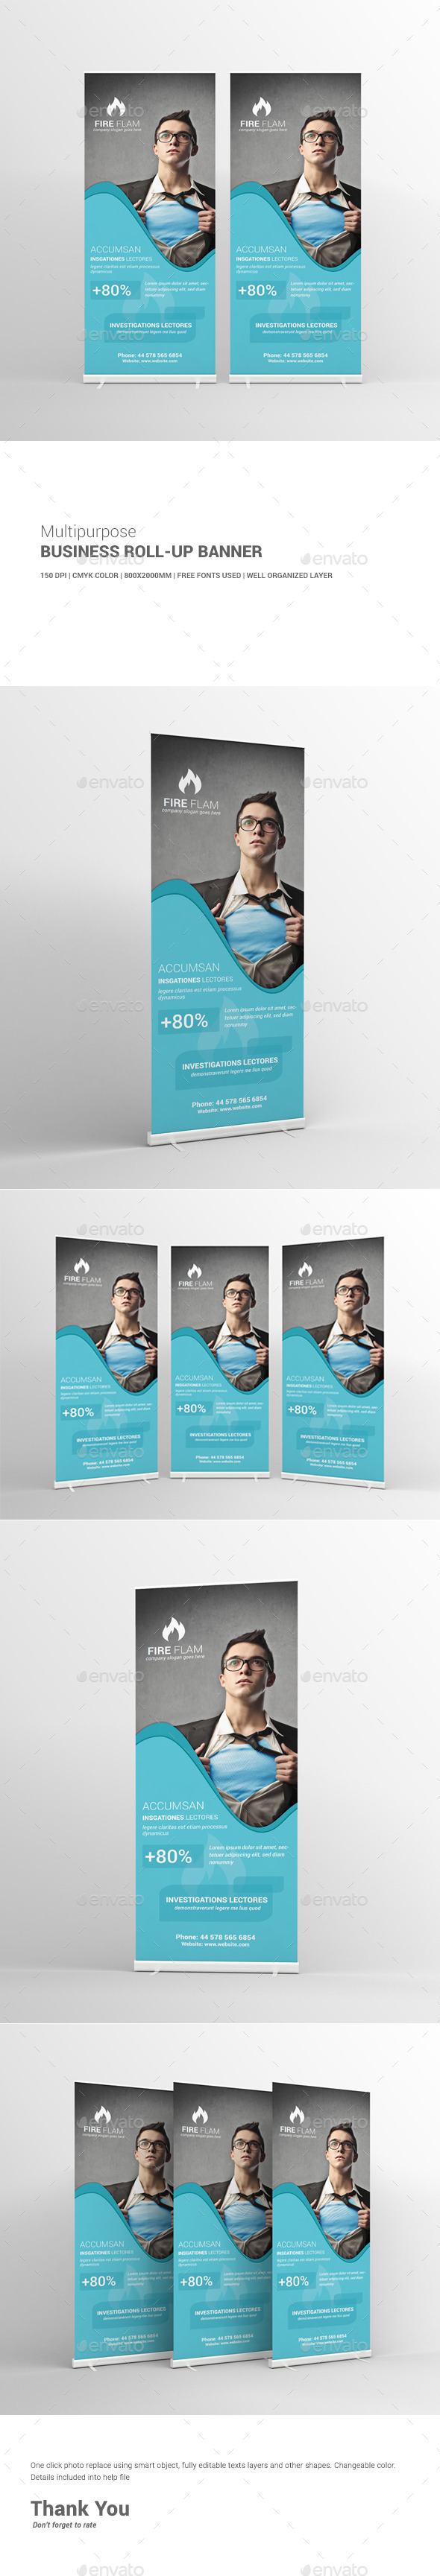 GraphicRiver Multipurpose Business Roll-Up Banner 10936827